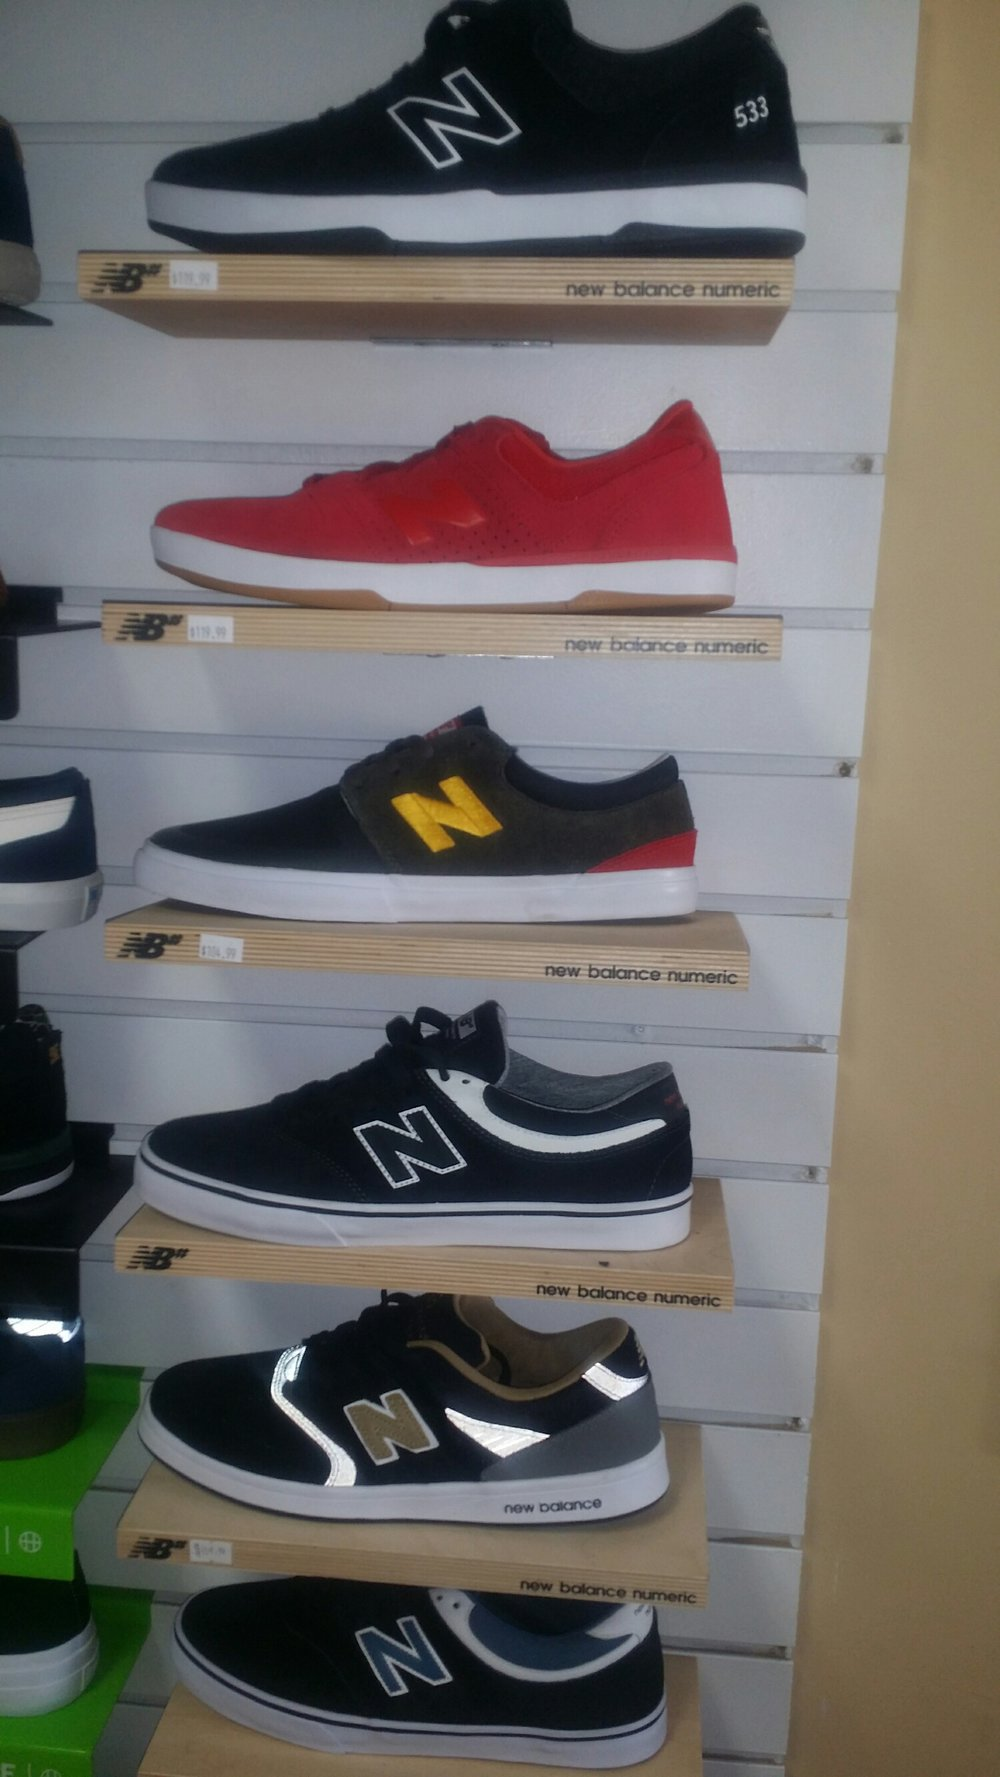 All New Balance Numeric $79.99 or less